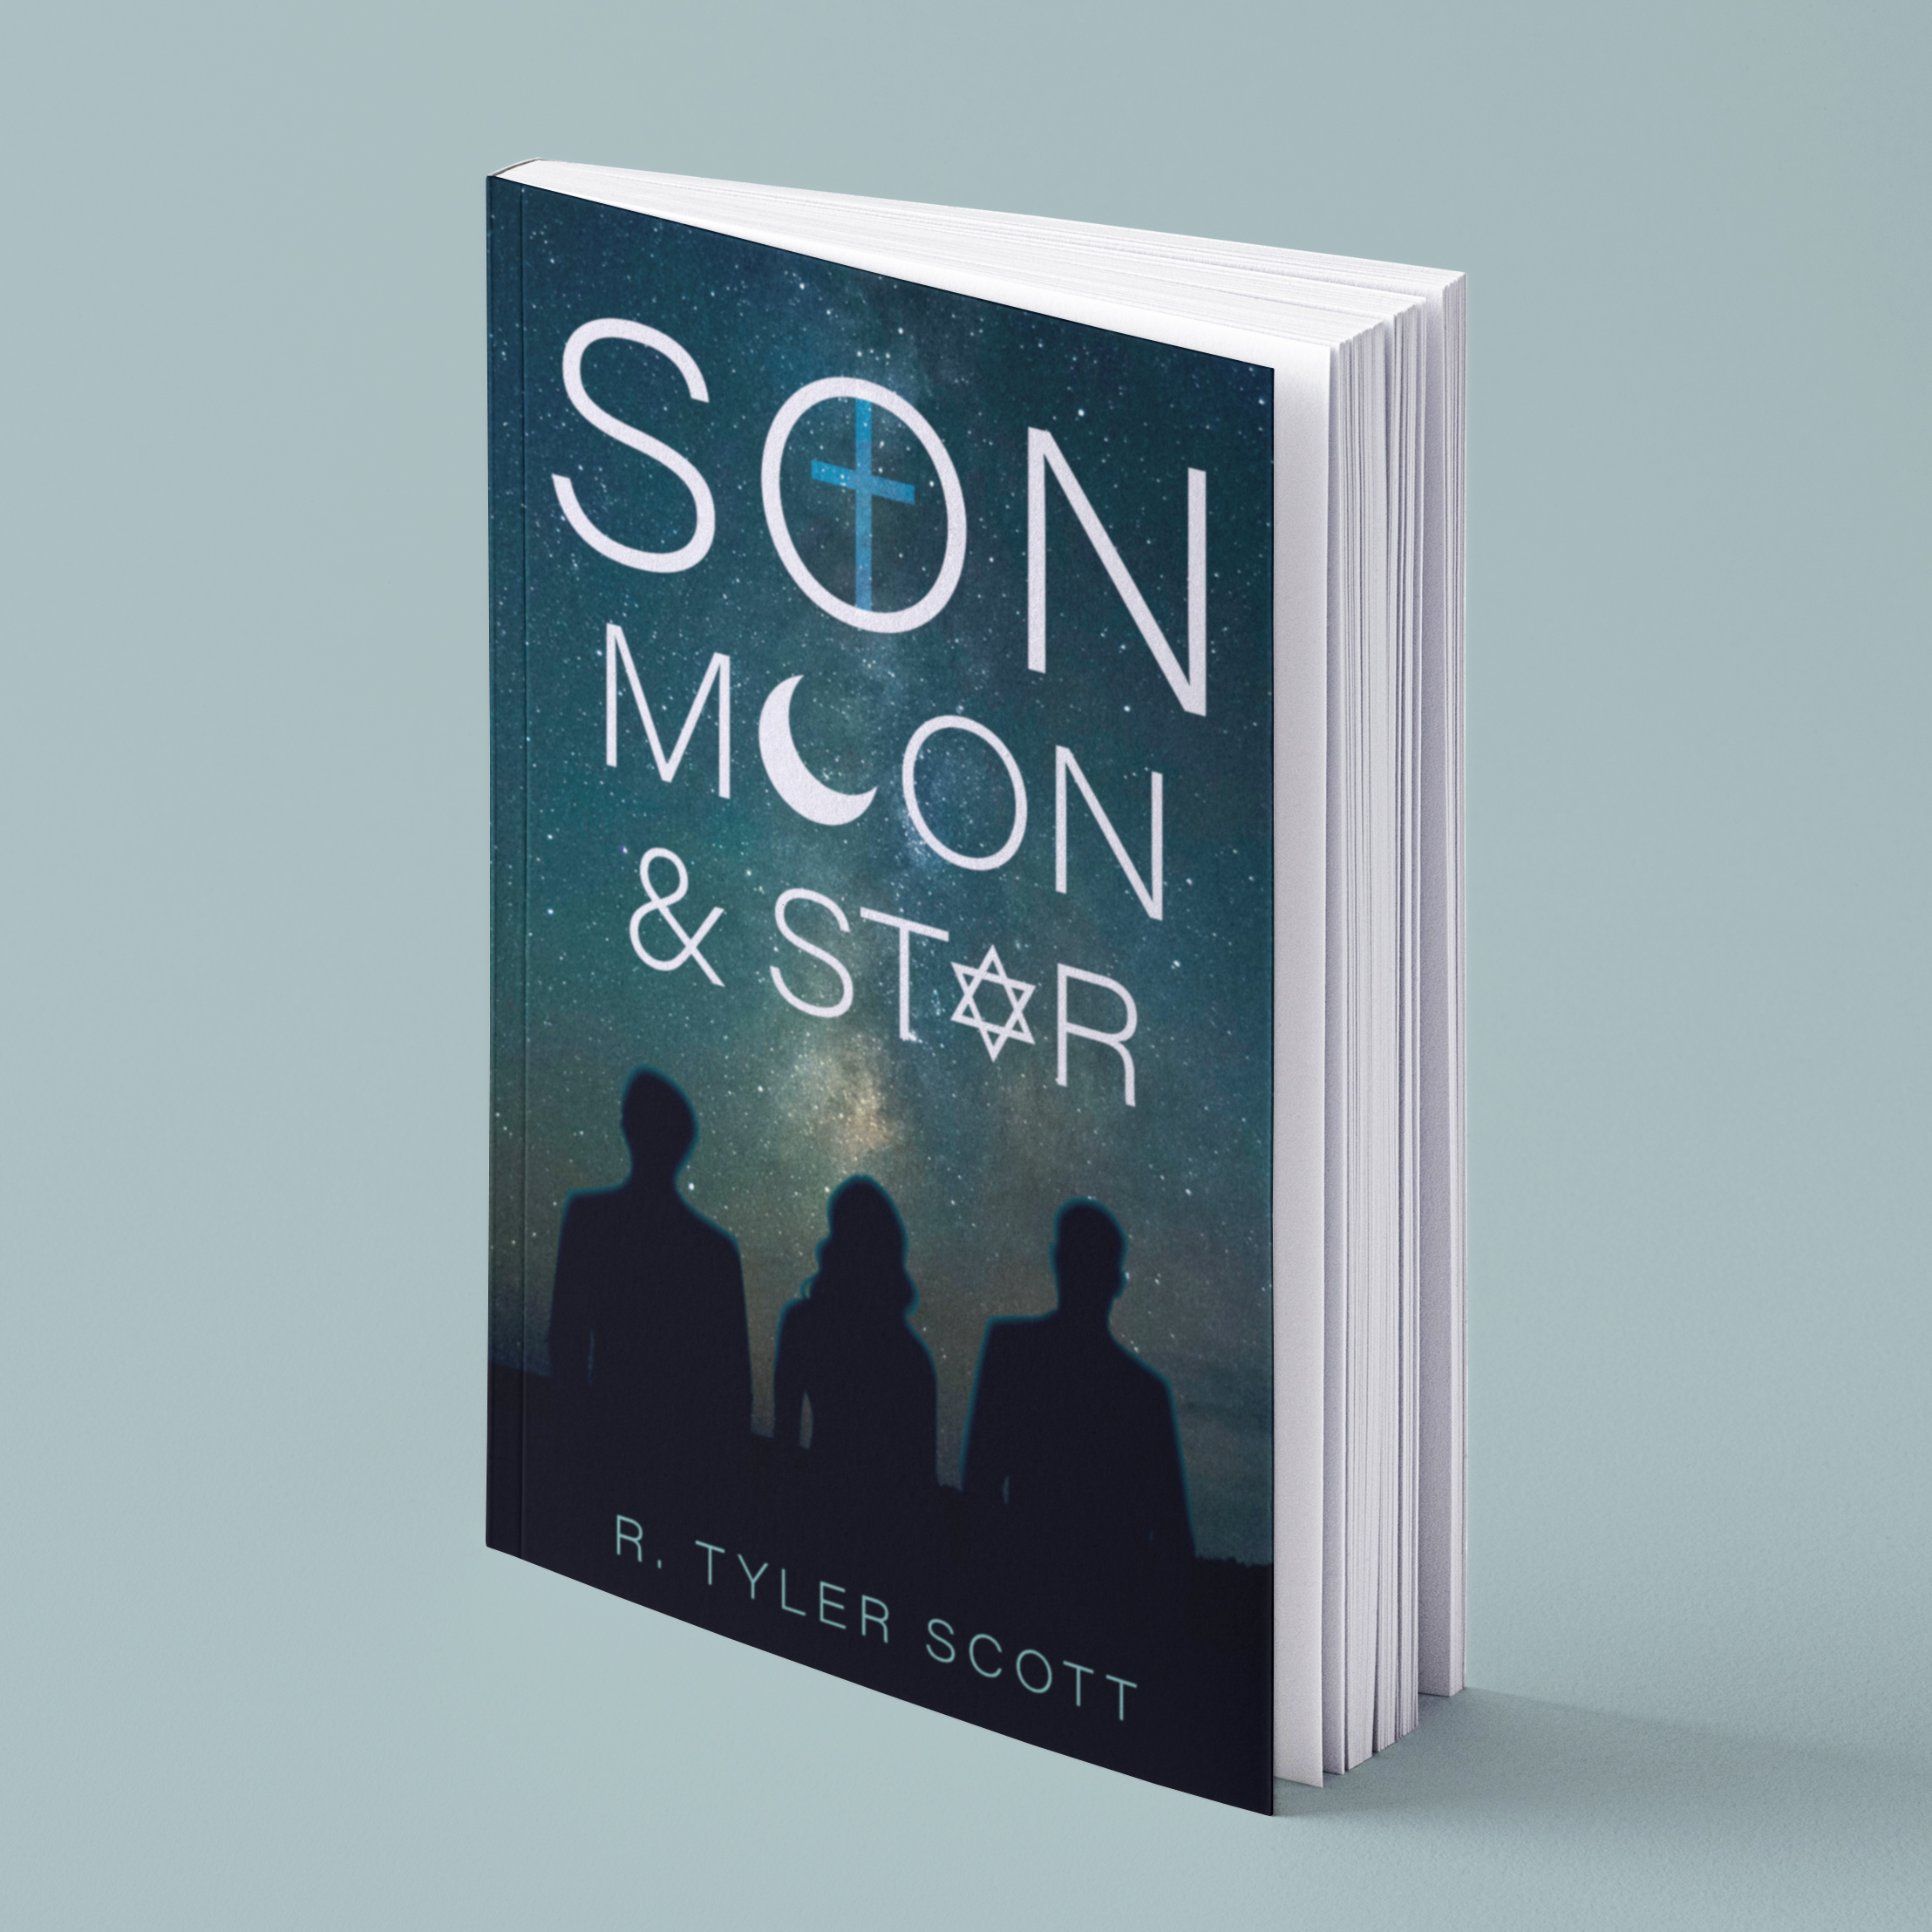 Son, Moon and Star - Amalgamation of different Religions, Cultures, and ethnicities into the common thread of Brotherhood.